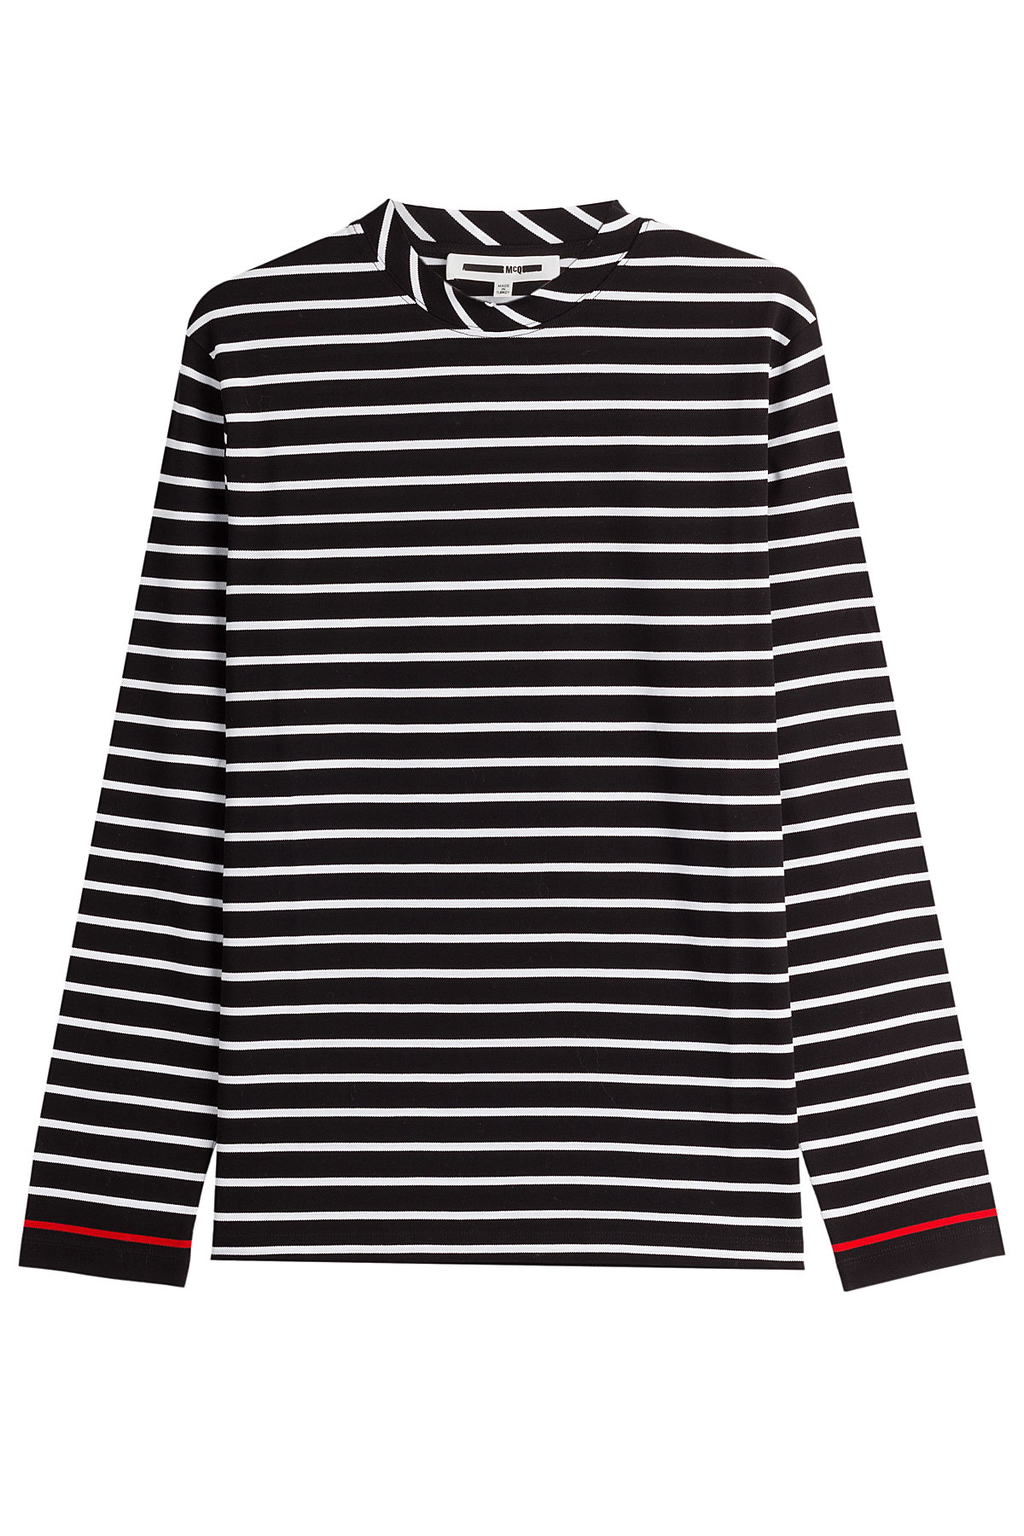 Striped Cotton Top - neckline: round neck; pattern: horizontal stripes; secondary colour: white; predominant colour: black; occasions: casual, creative work; length: standard; style: top; fibres: cotton - 100%; fit: straight cut; sleeve length: long sleeve; sleeve style: standard; pattern type: fabric; texture group: jersey - stretchy/drapey; pattern size: big & busy (top); wardrobe: basic; season: a/w 2016